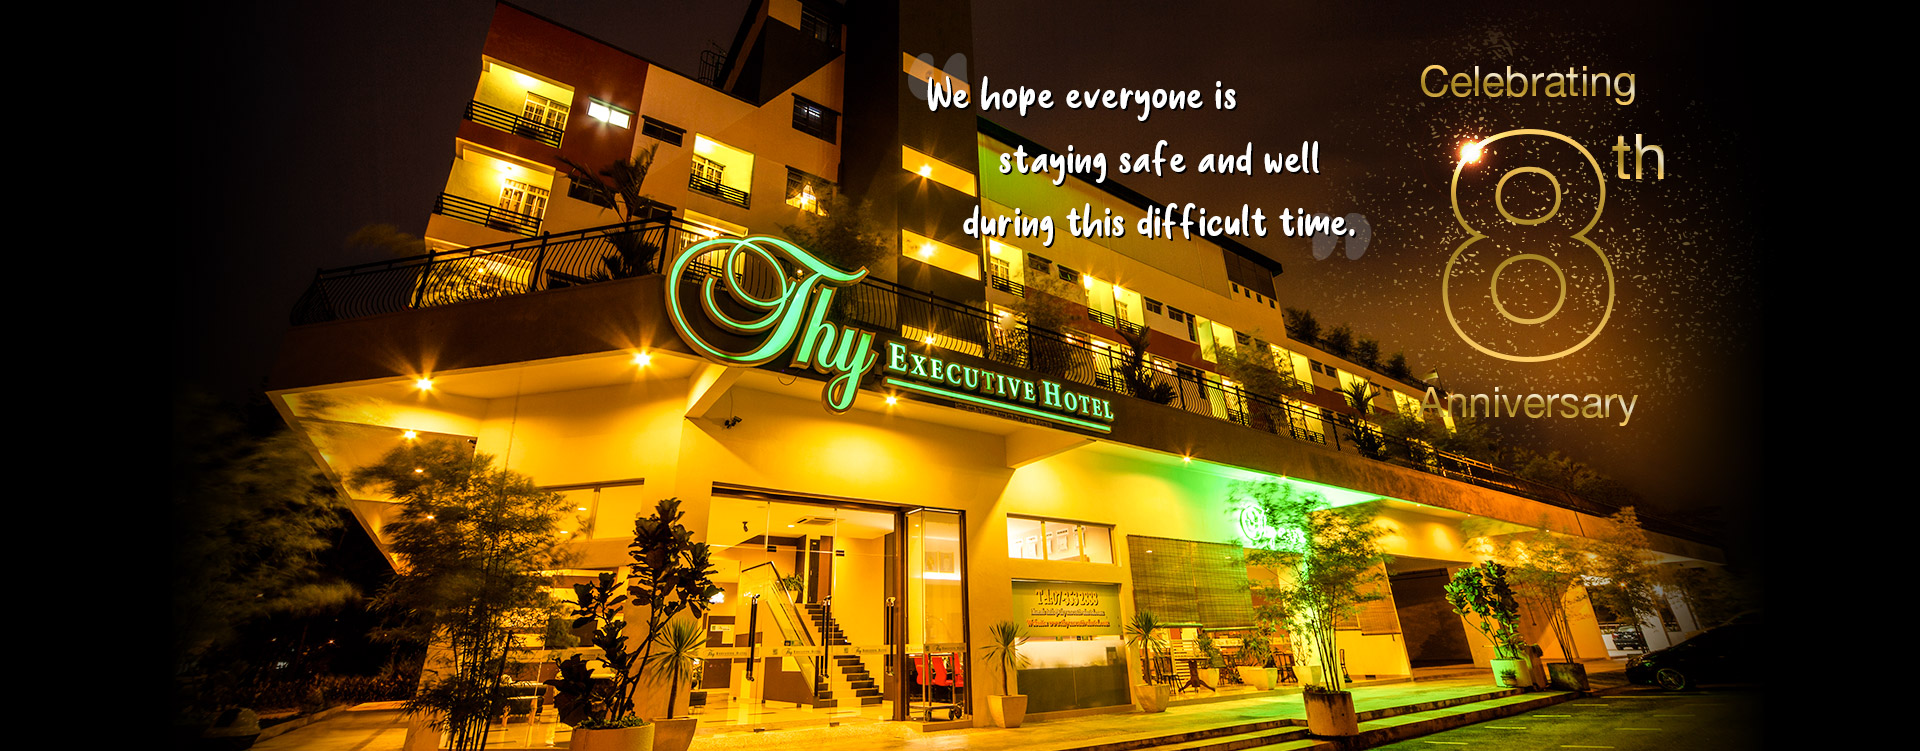 Thy Executive Hotel Celebrating 8th Anniversary